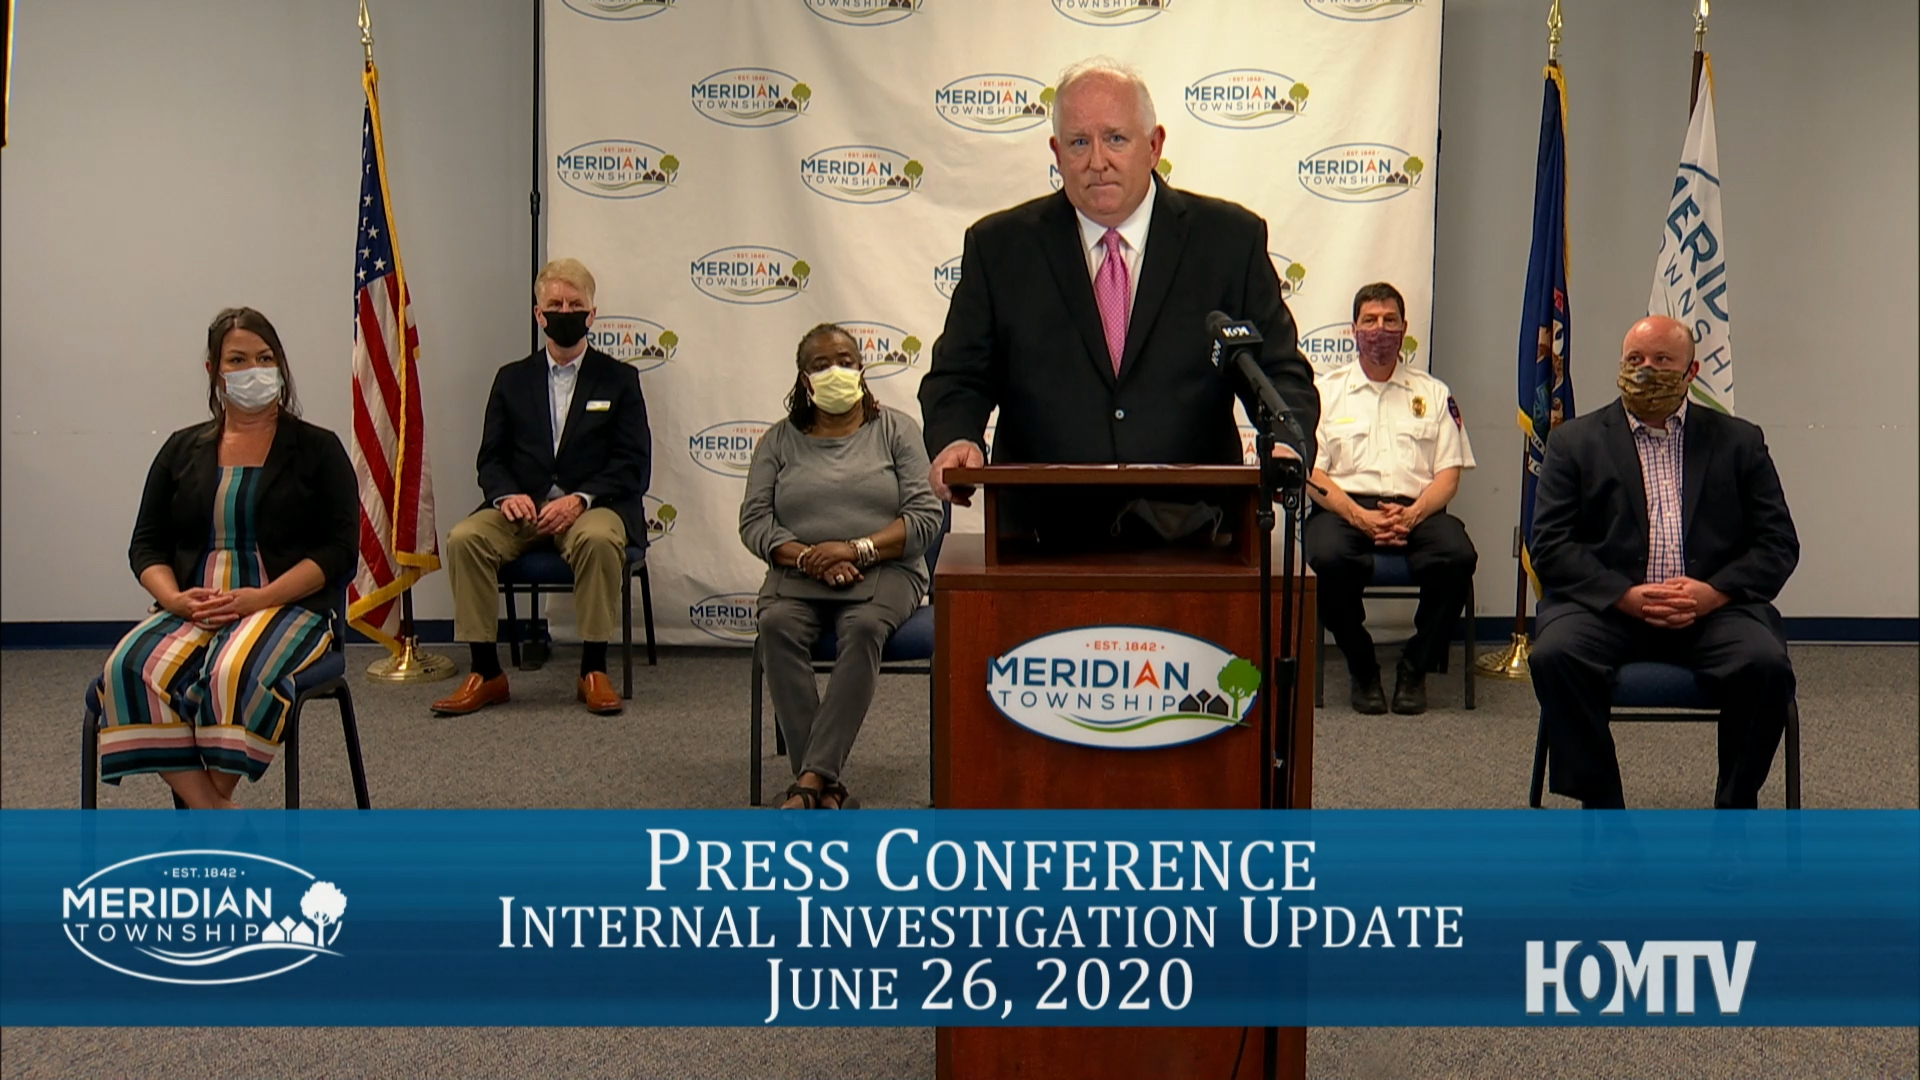 Live Coverage: Meridian Township Internal Investigation UPDATE Press Conference